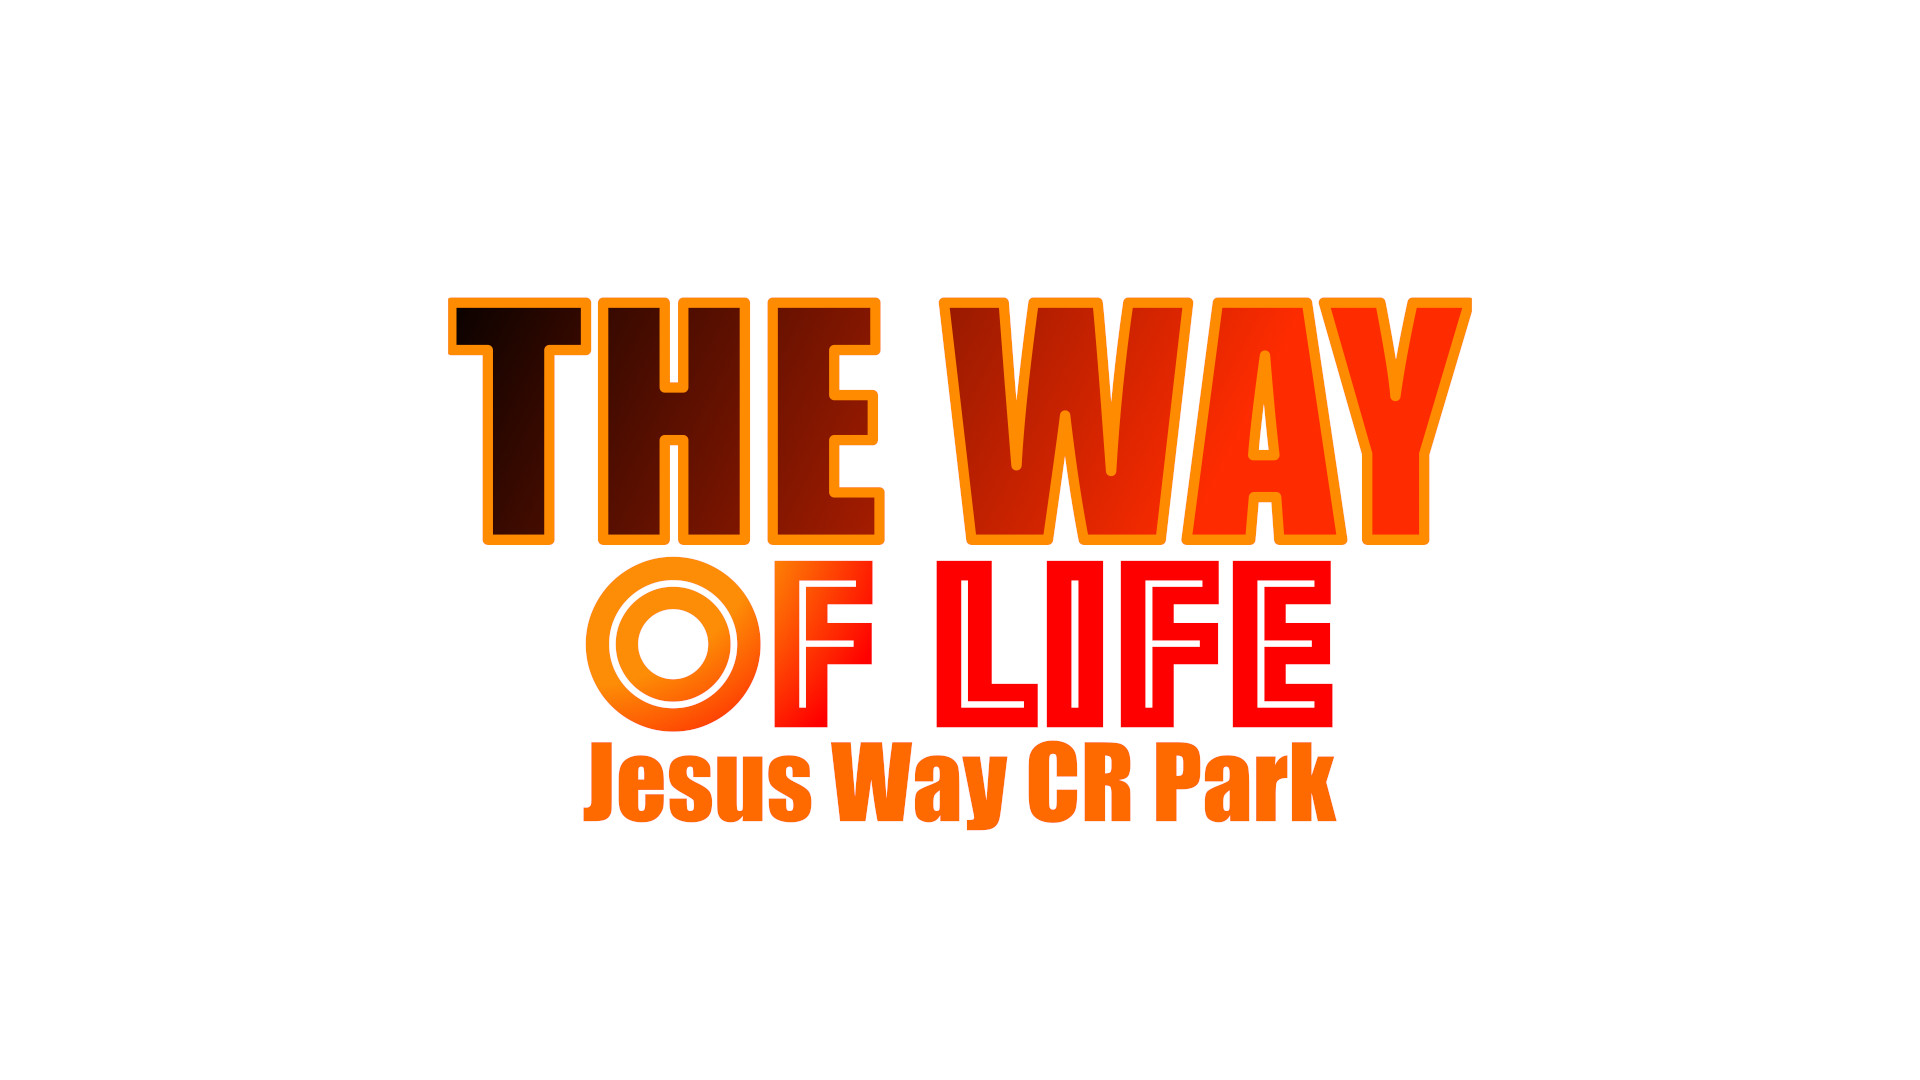 The Way of Life New Delhi CR Park Church